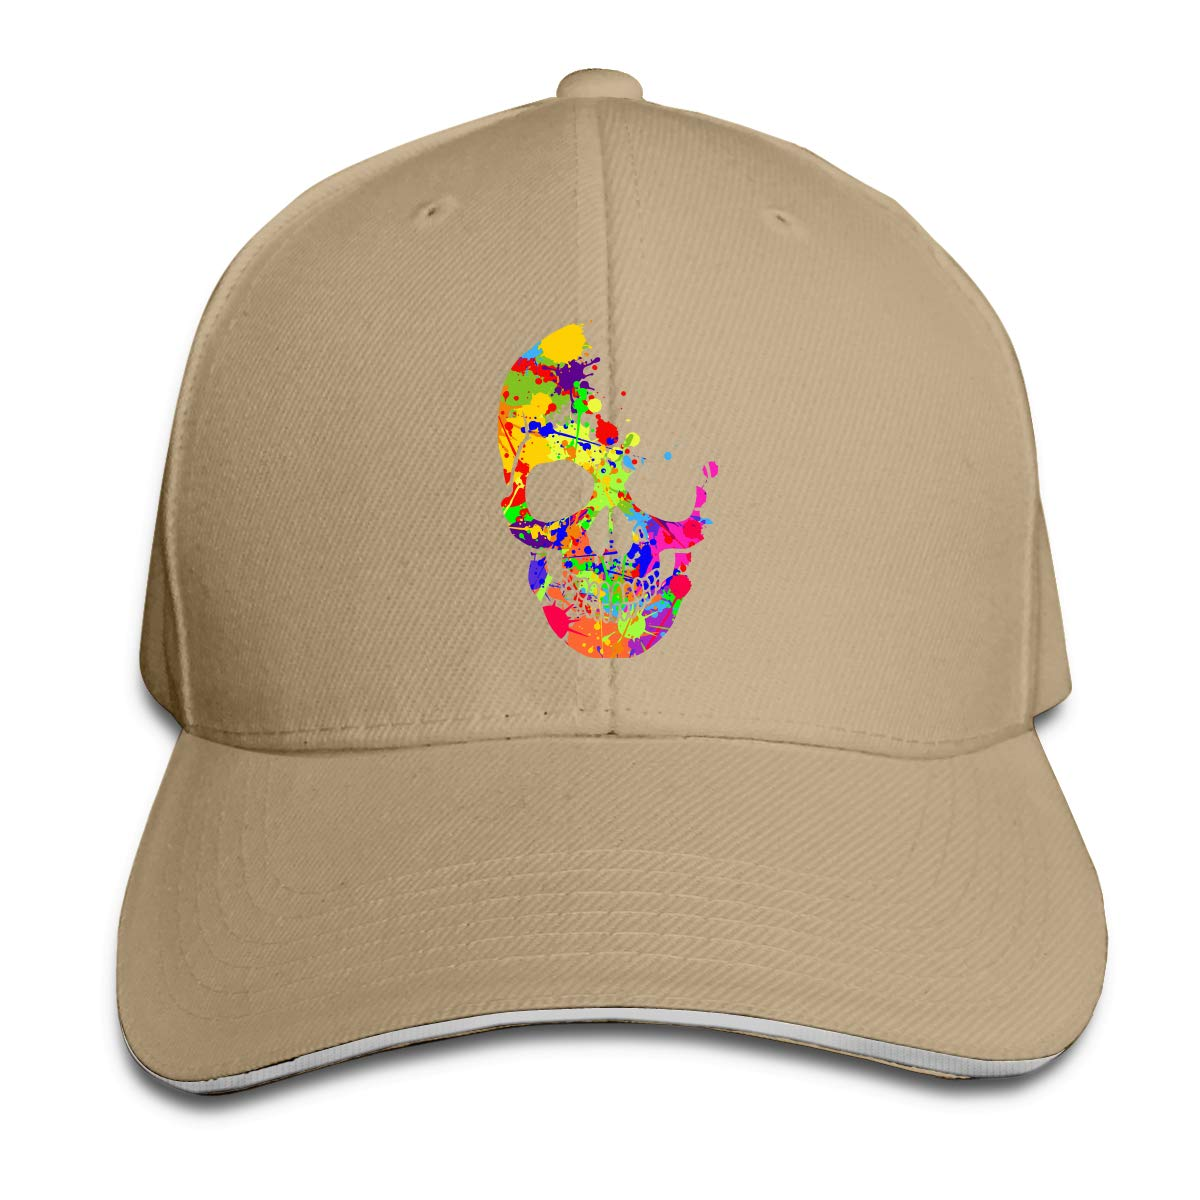 Rainbow Skull Outdoor Snapback Sandwich Cap Adjustable Baseball Hat Street Rapper Hat